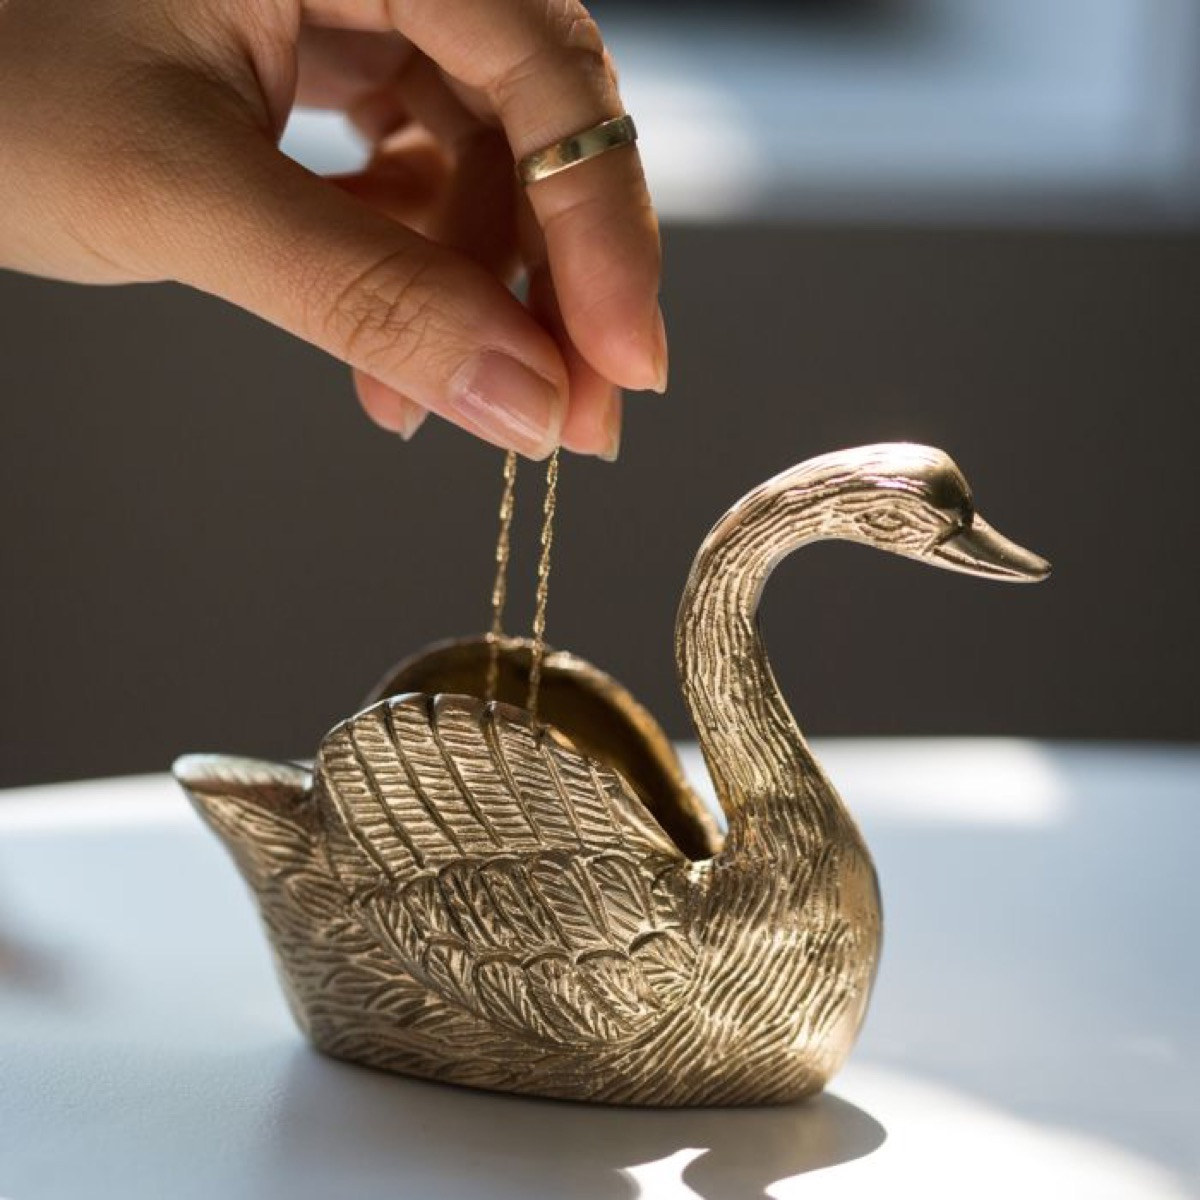 person putting necklace into swan dish